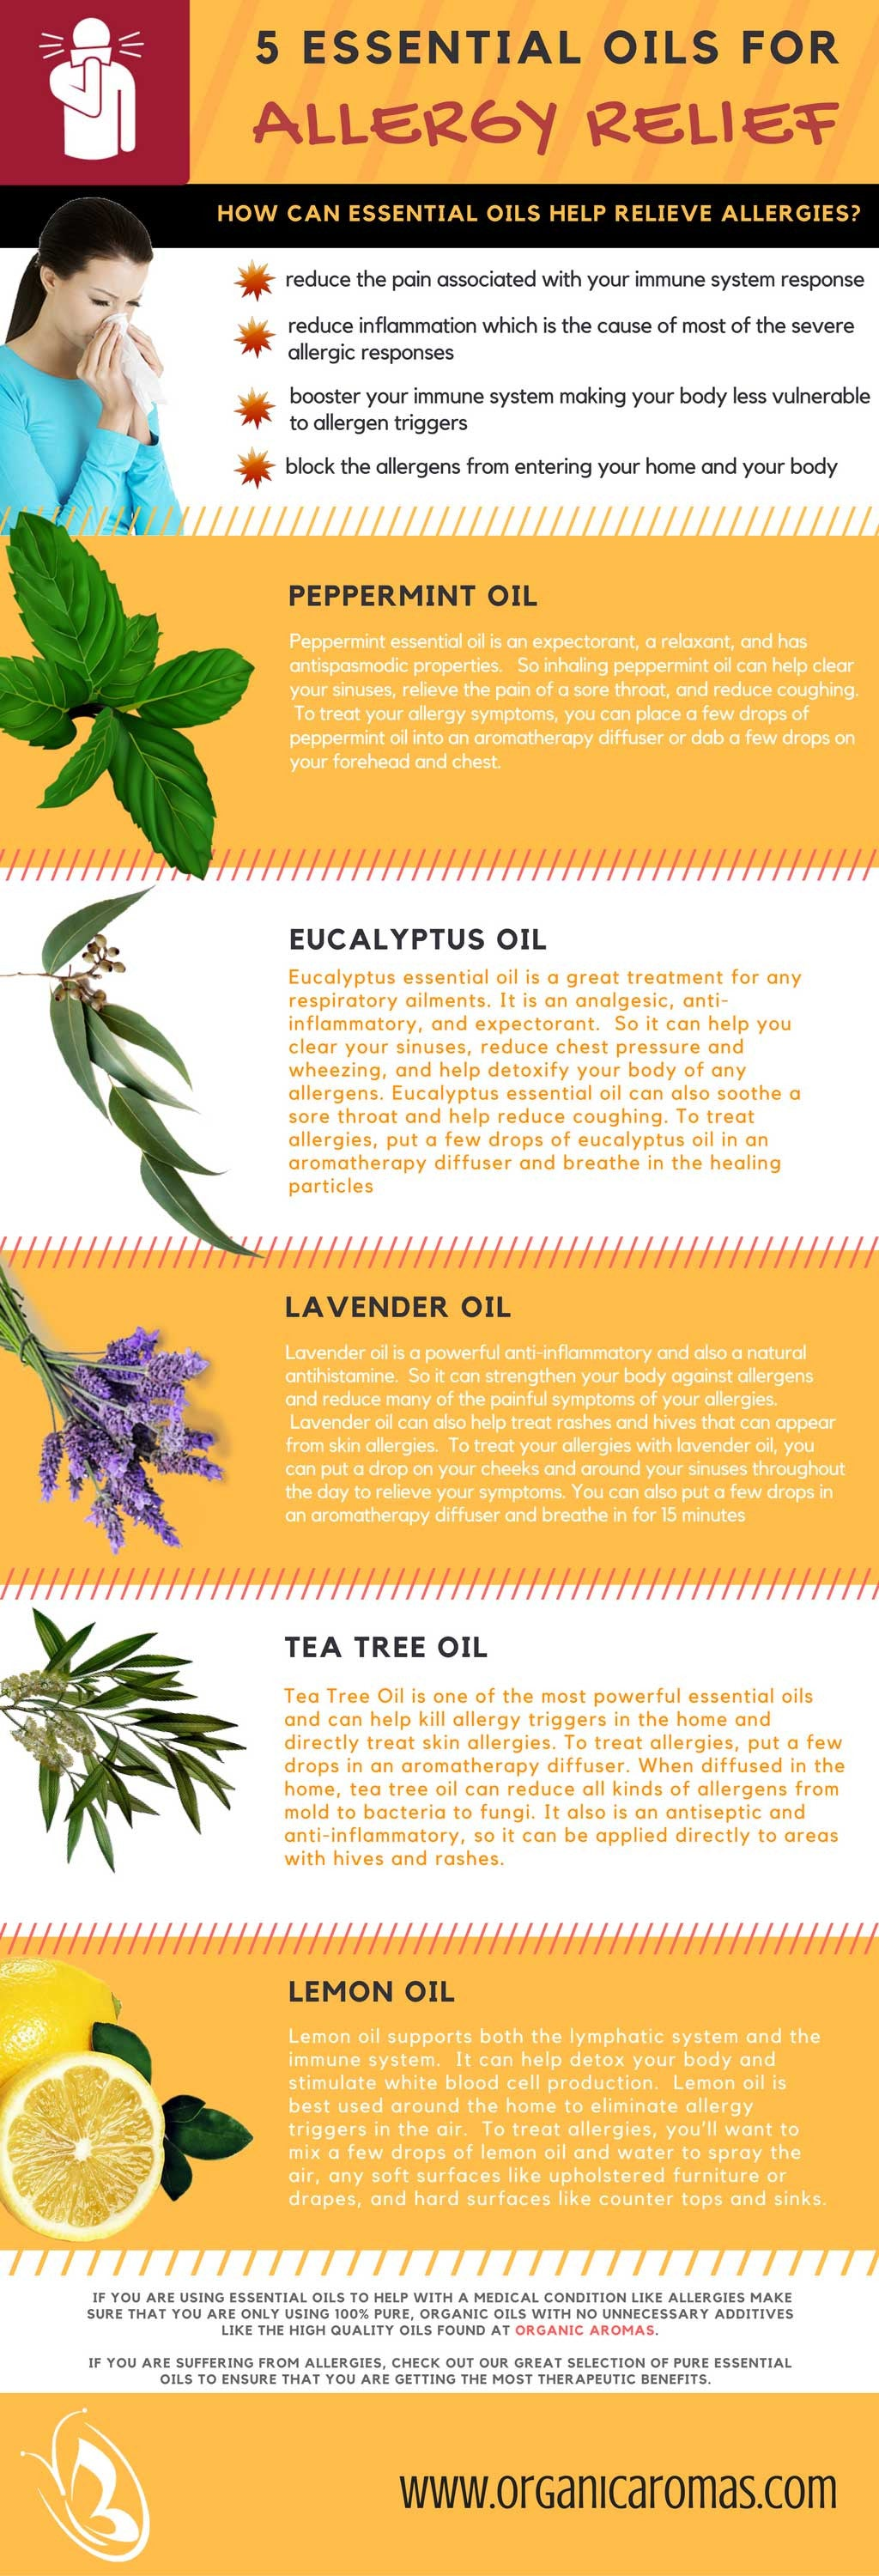 5 Essential Oils For Allergy Relief - Organic Aromas